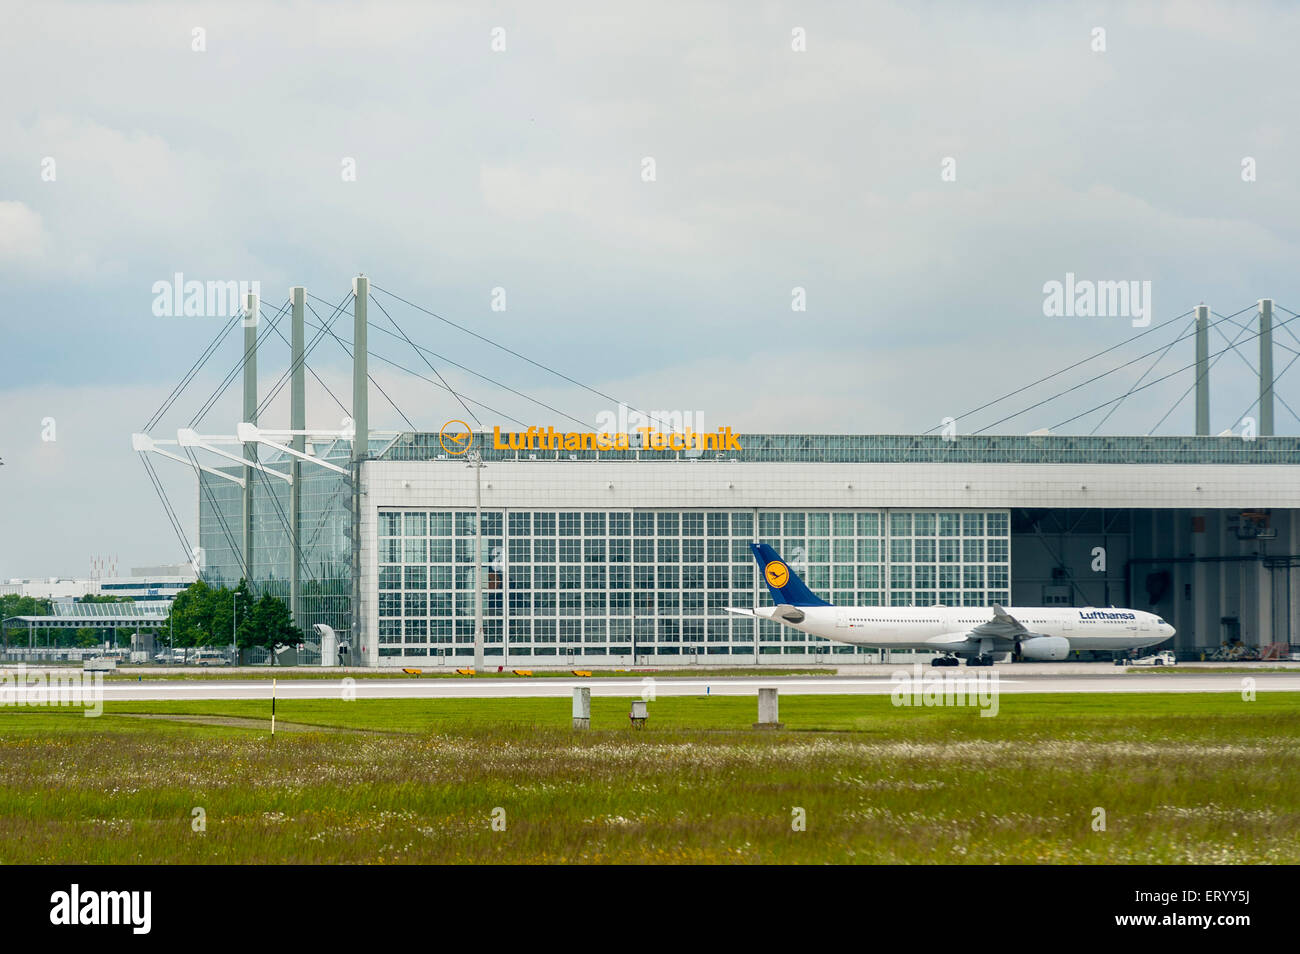 Lufthansa Airplane in front of Hangar - Lufthansa Technik - Stock Image